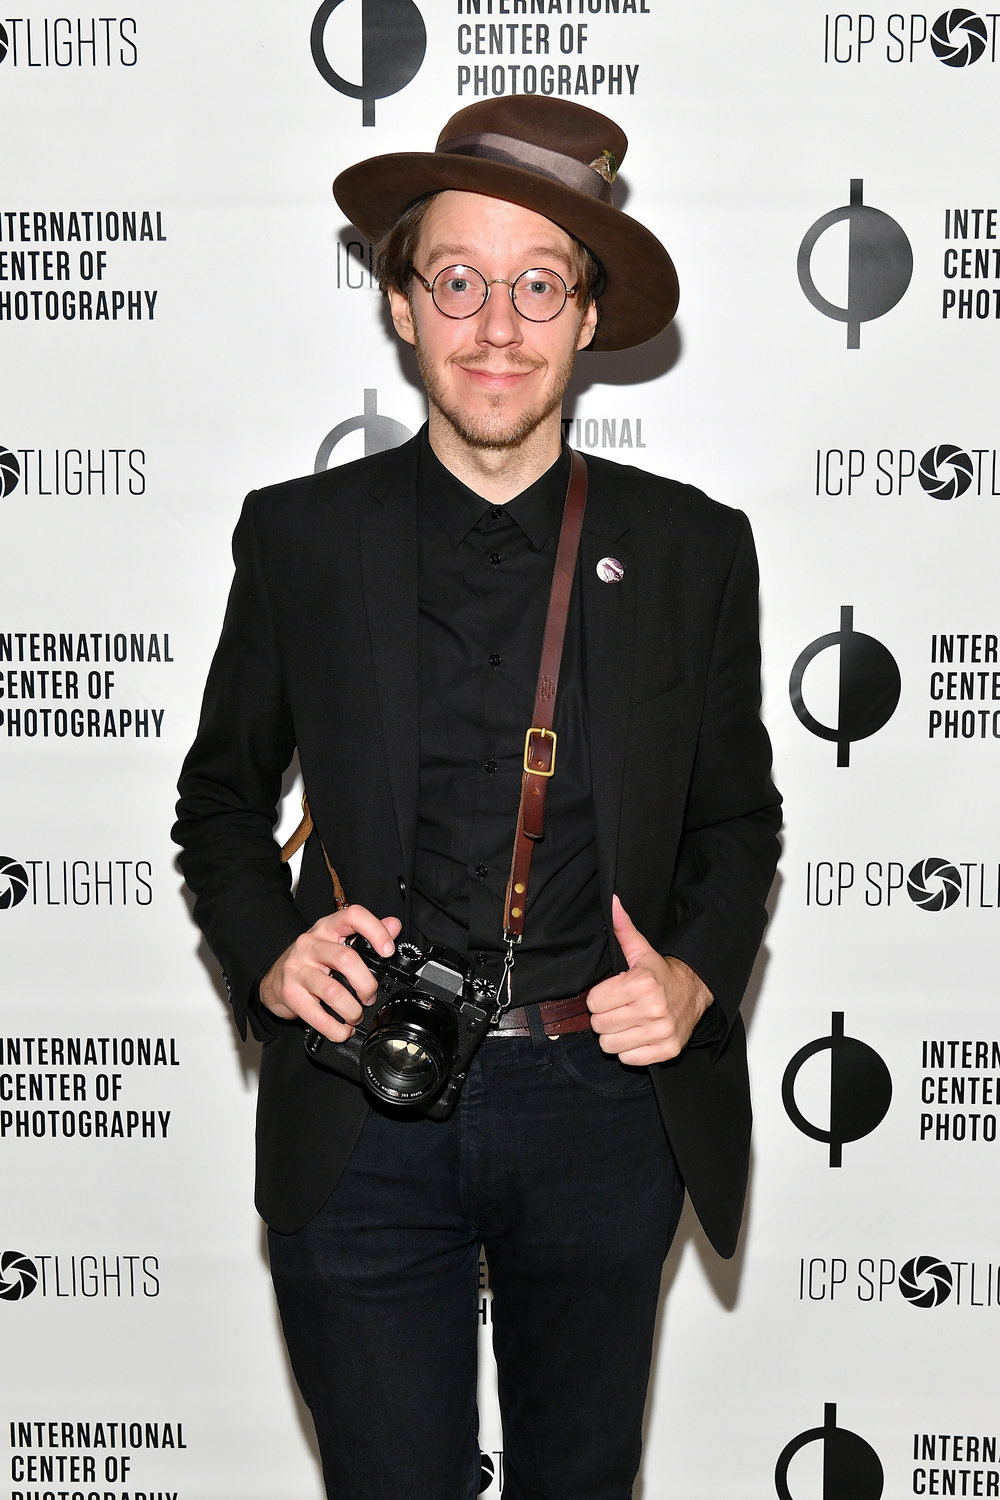 Michael Mooney attends the ICP Spotlights Luncheon Honoring Mickalene Thomas ©Getty Images for ICP